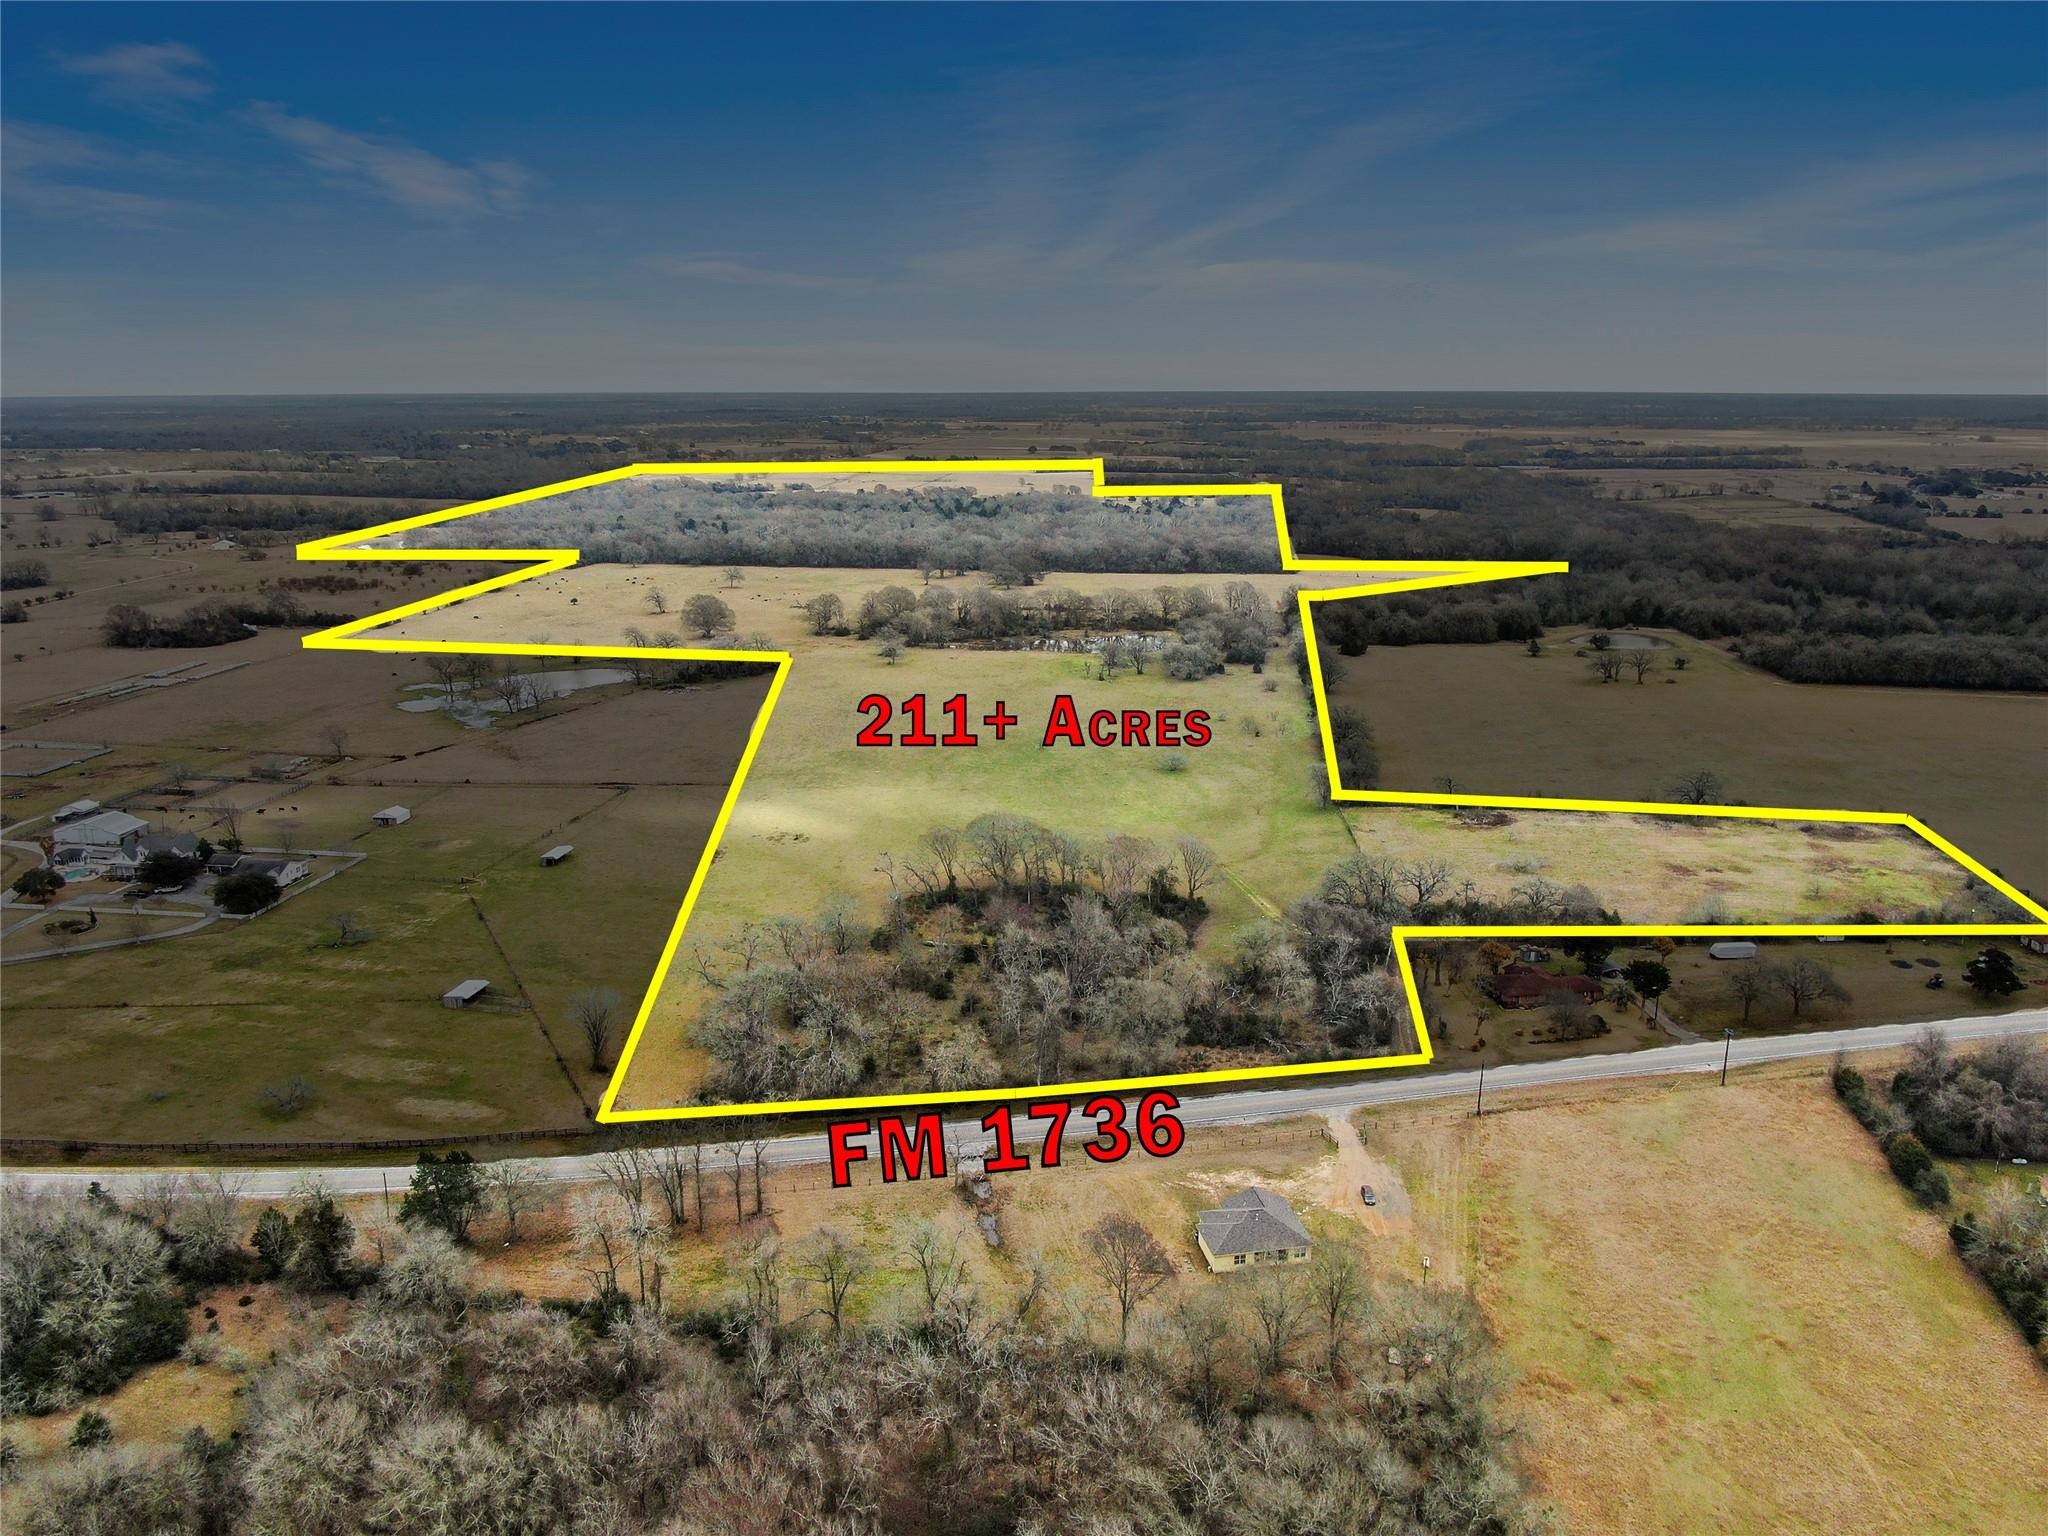 00 FM1736 Road Property Photo - Hempstead, TX real estate listing